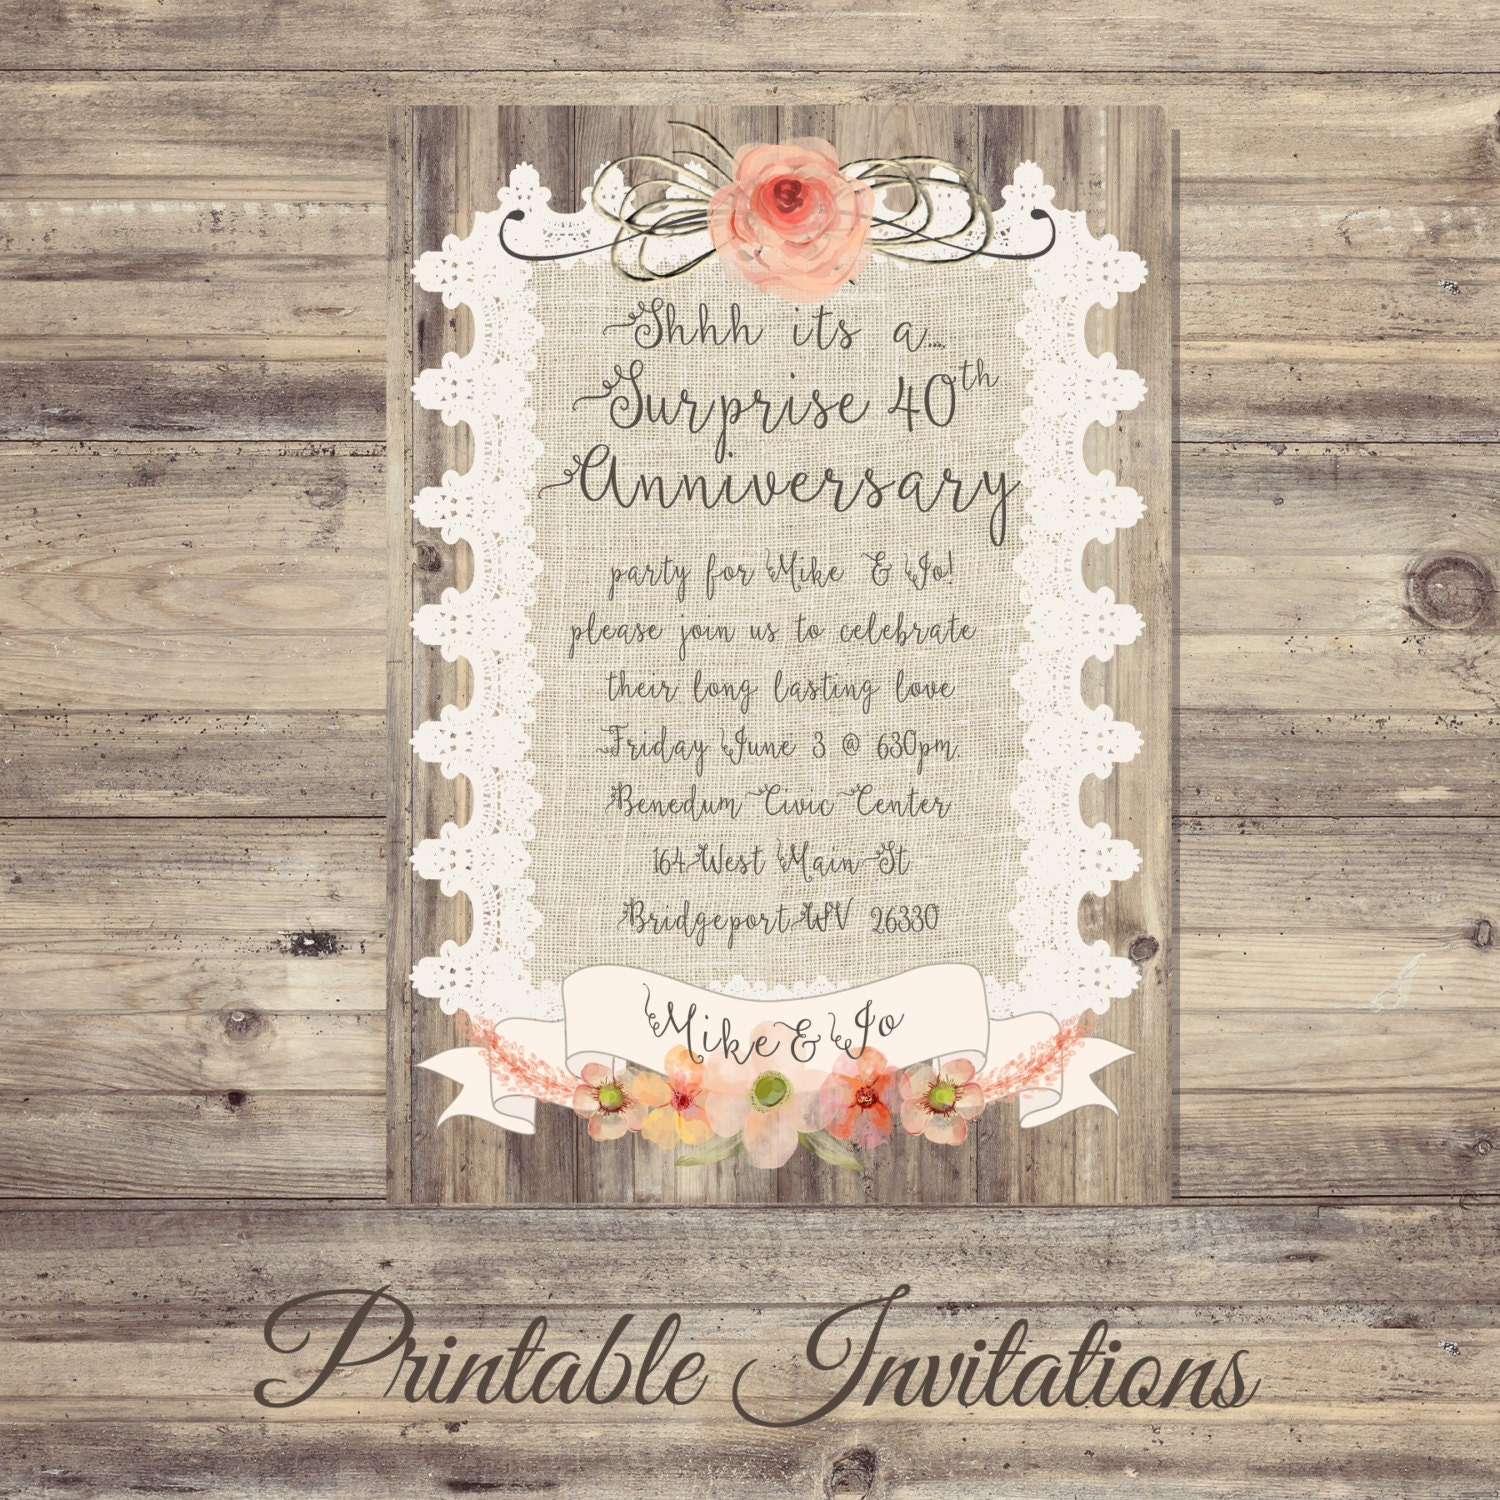 Surprise Gift For Wedding Anniversary: Surprise Anniversary Invitations Burlap And Lace Anniversary